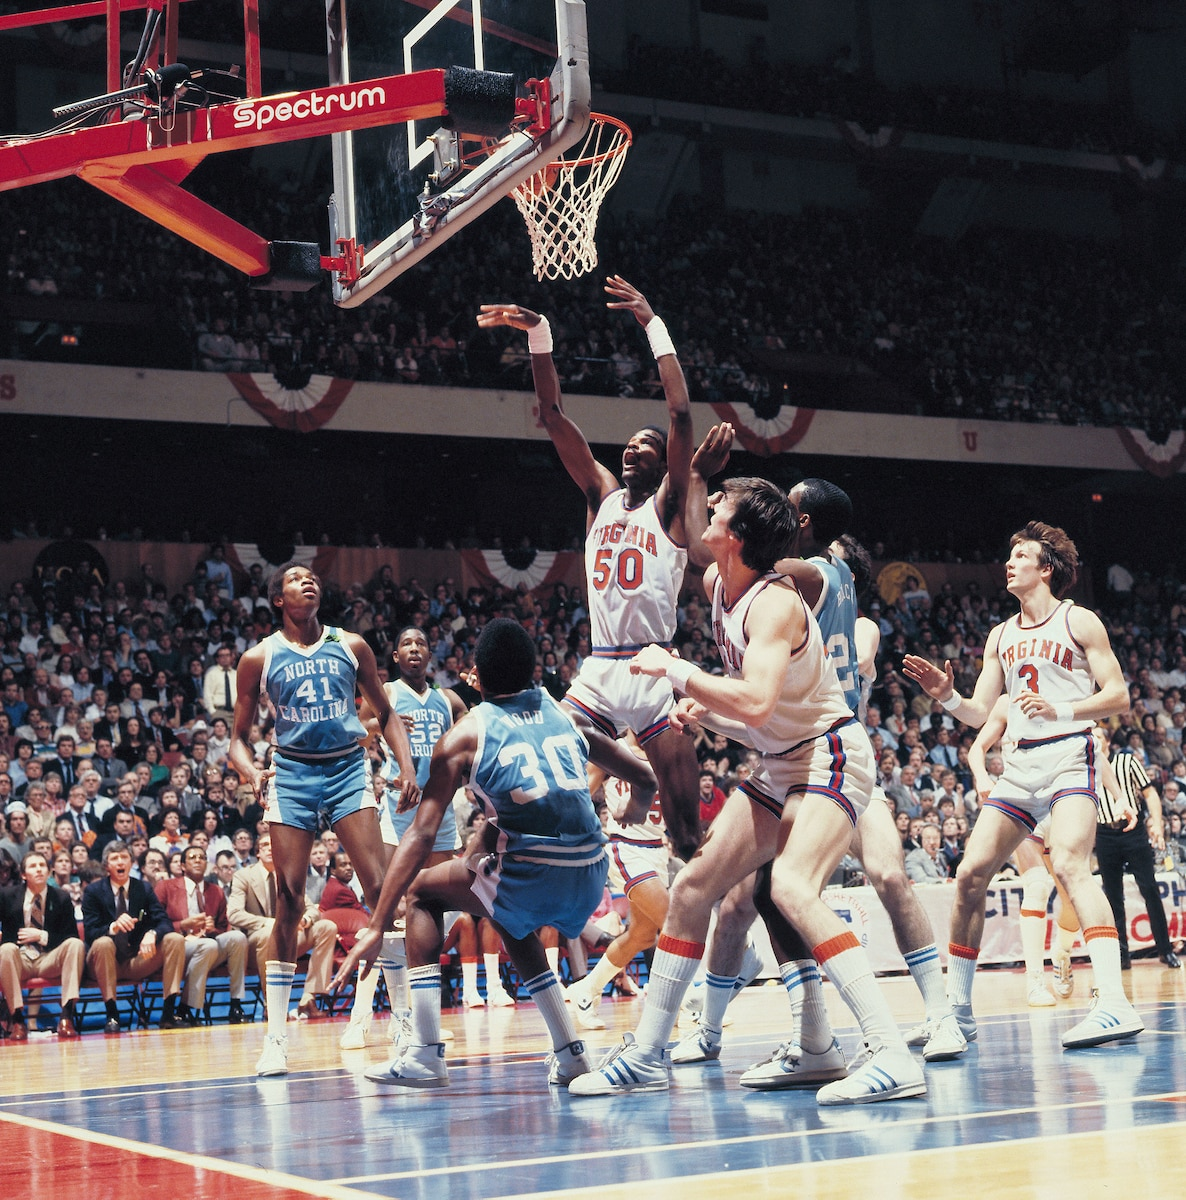 Ralph Sampson in the 1981 Final Four.